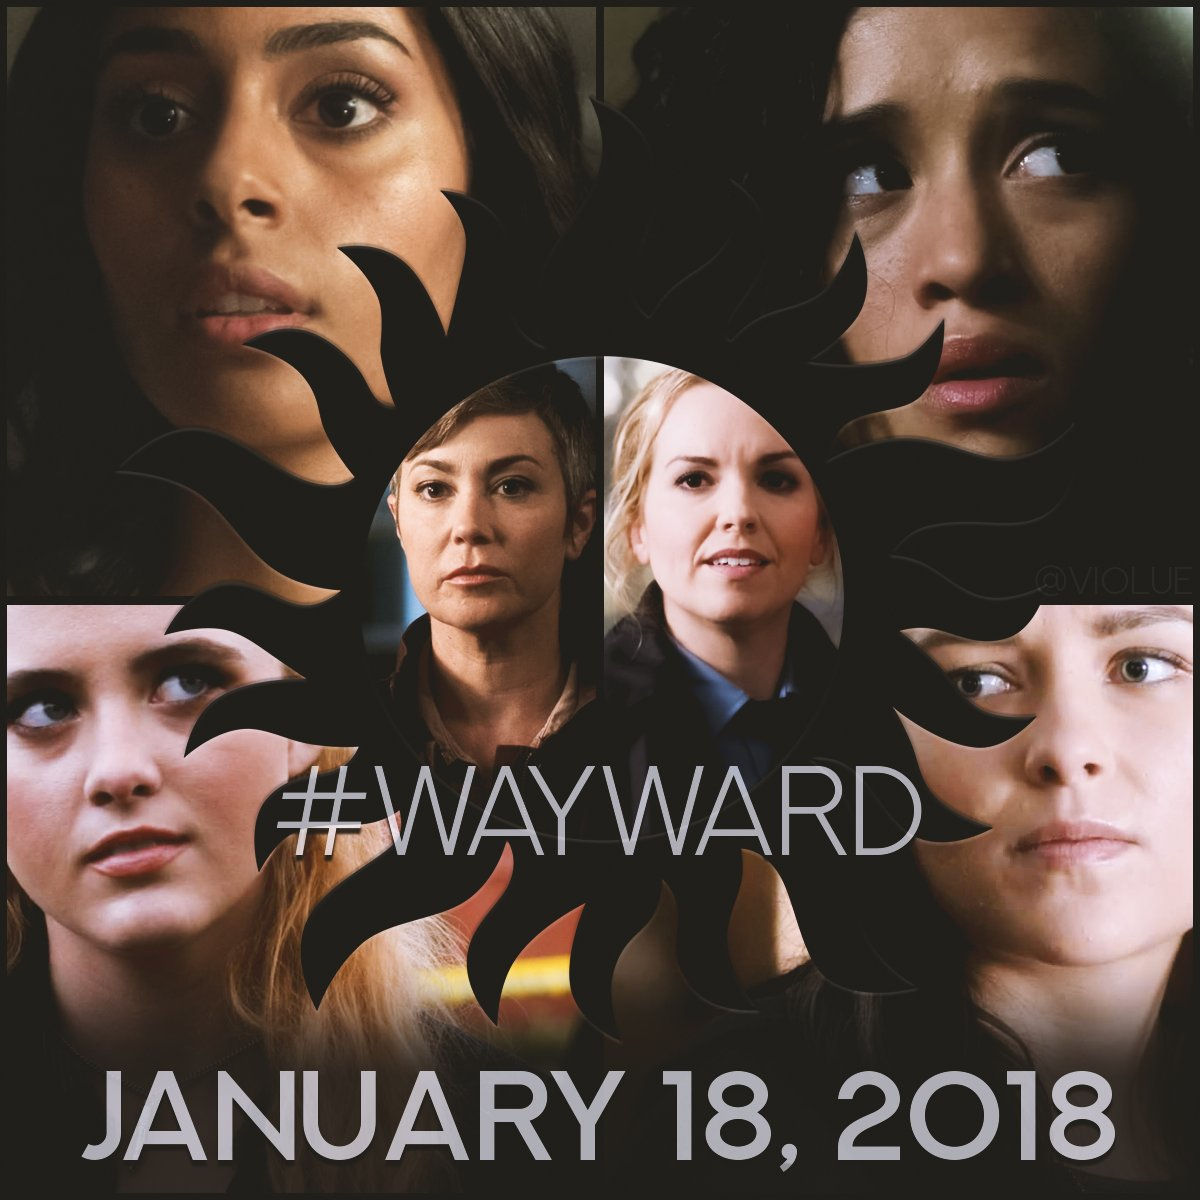 RT @violue: #Wayward is coming.   Are you in? https://t.co/YmW6BIaQI6